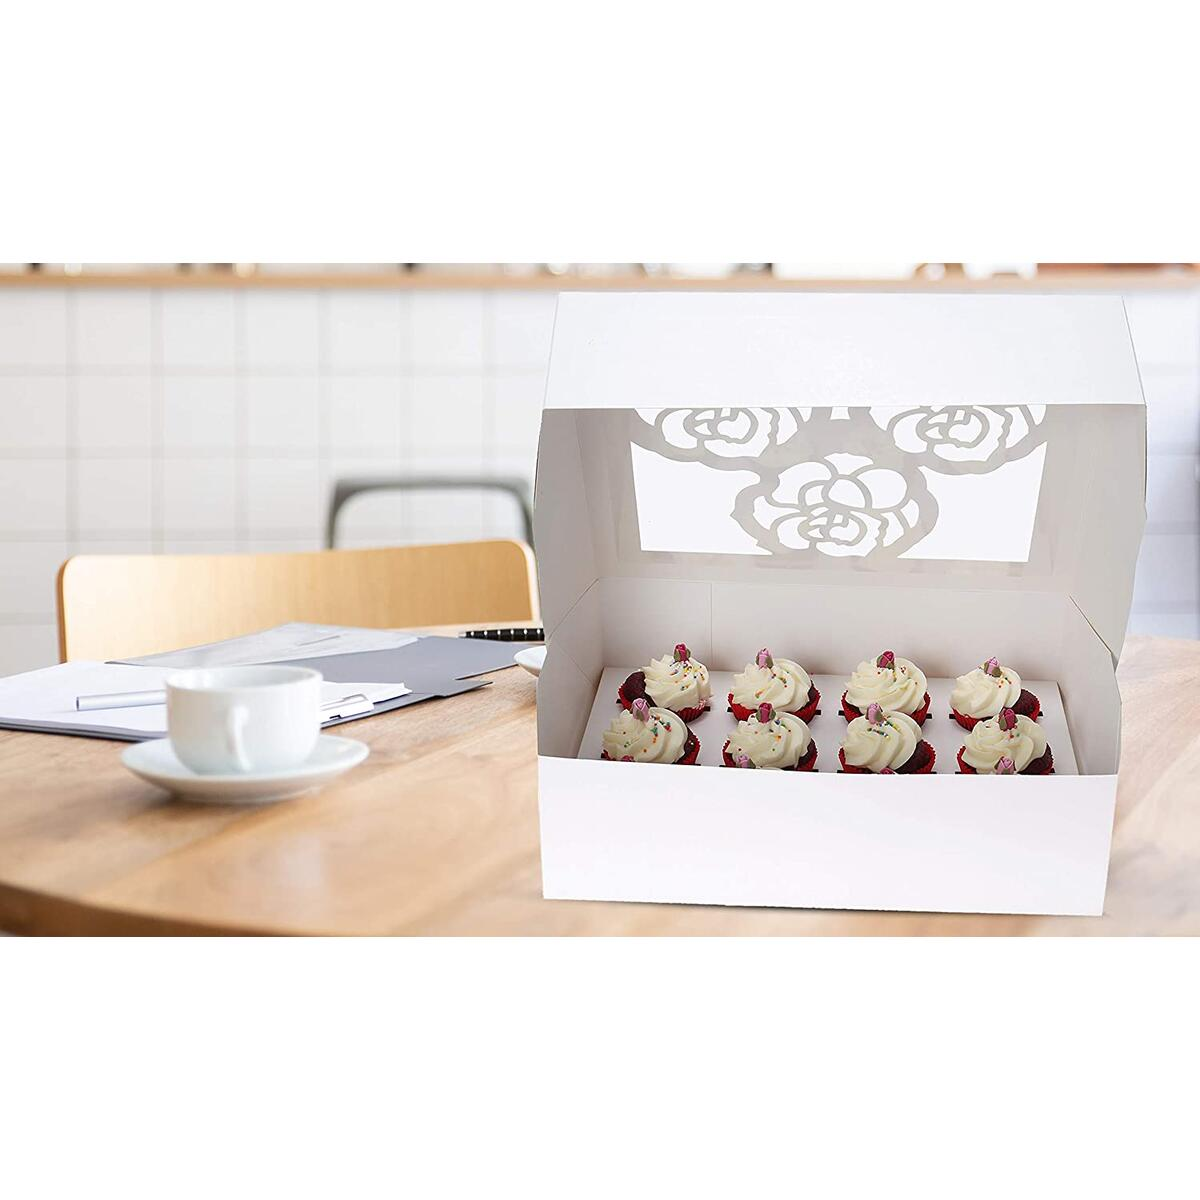 10-Set Large Cupcake Boxes Hold 12 Standard Cupcakes with holder inserts and papers, White Cupcake Carrier, Cupcake Containers, Food Grade Cupcake Holders clear window for Cookie, Muffin and Pastry